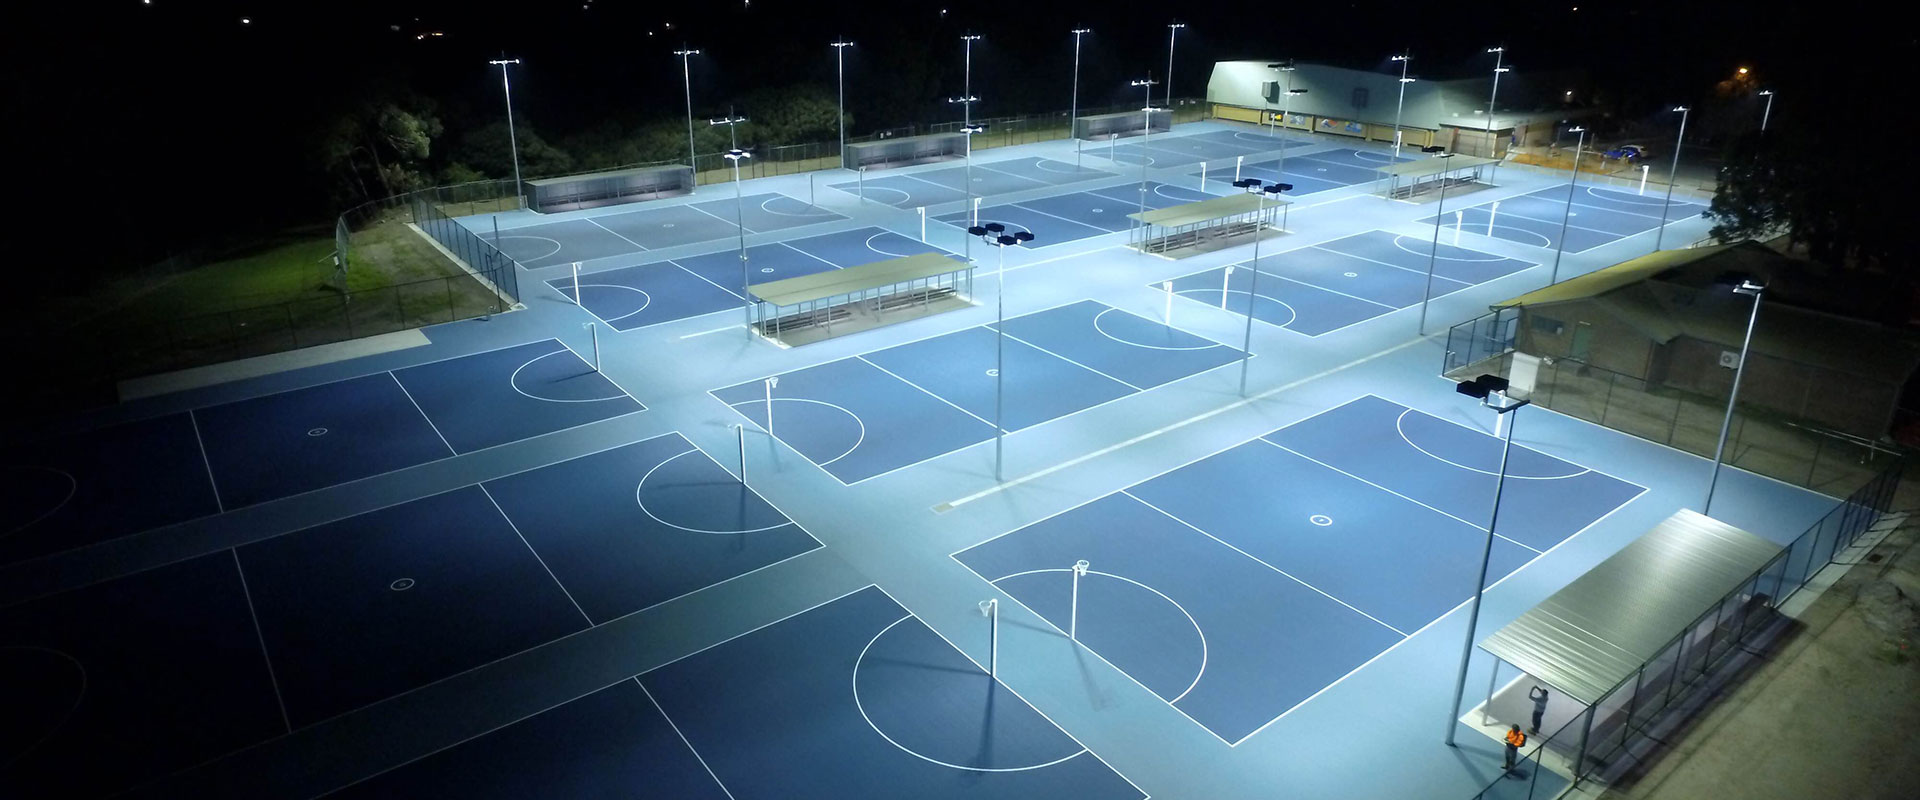 matchsaver-court-protection-for-netball